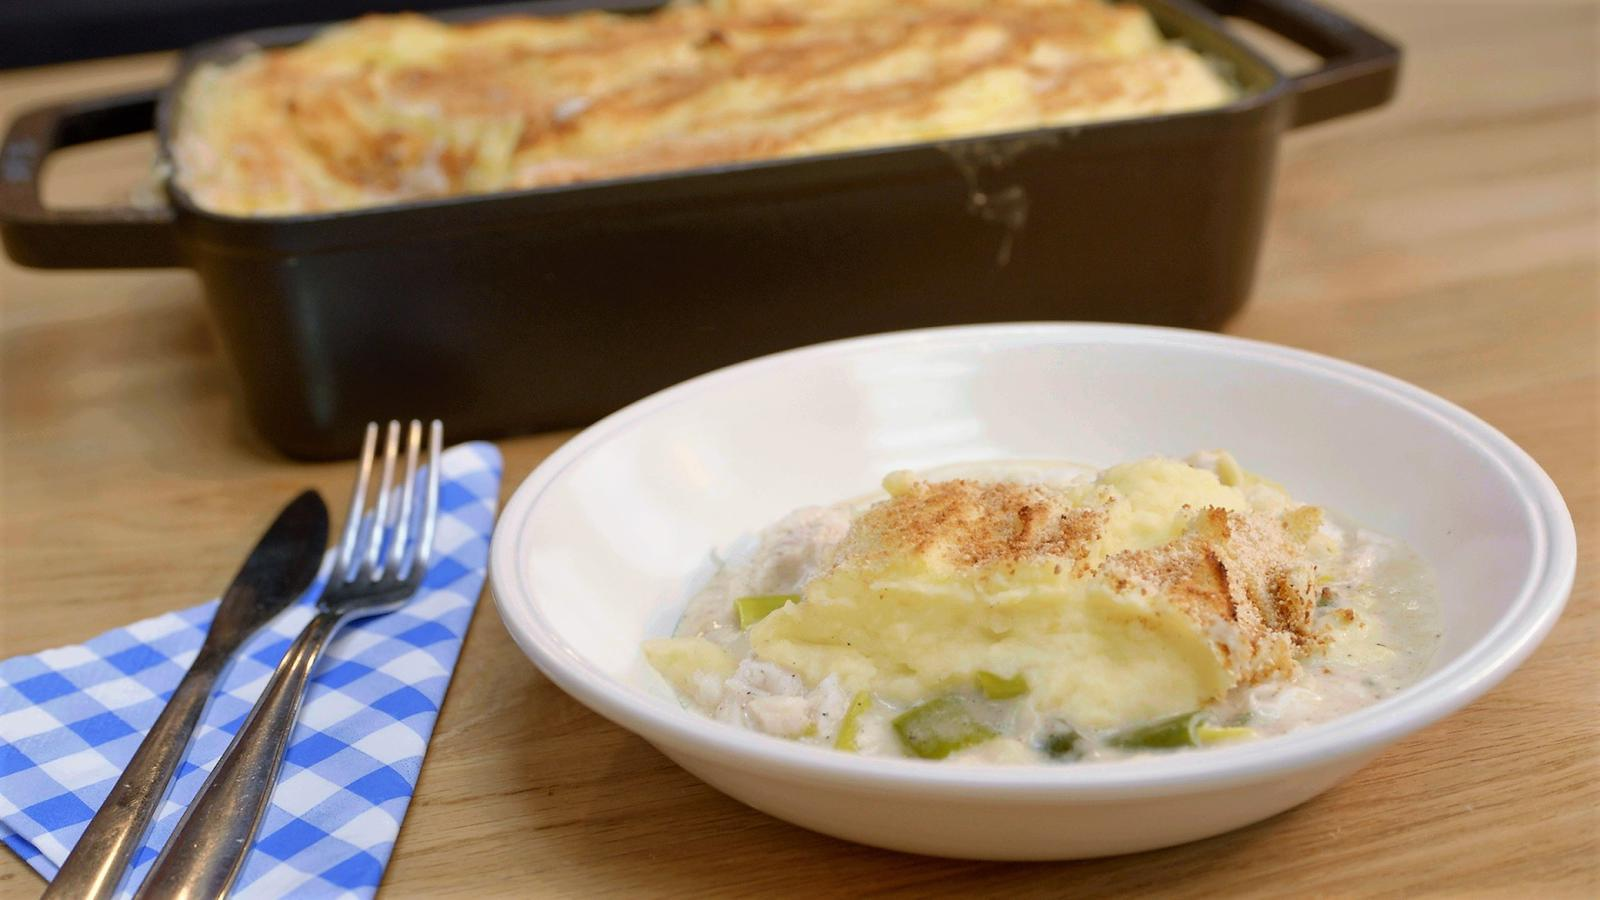 Fish pie met heek en prei